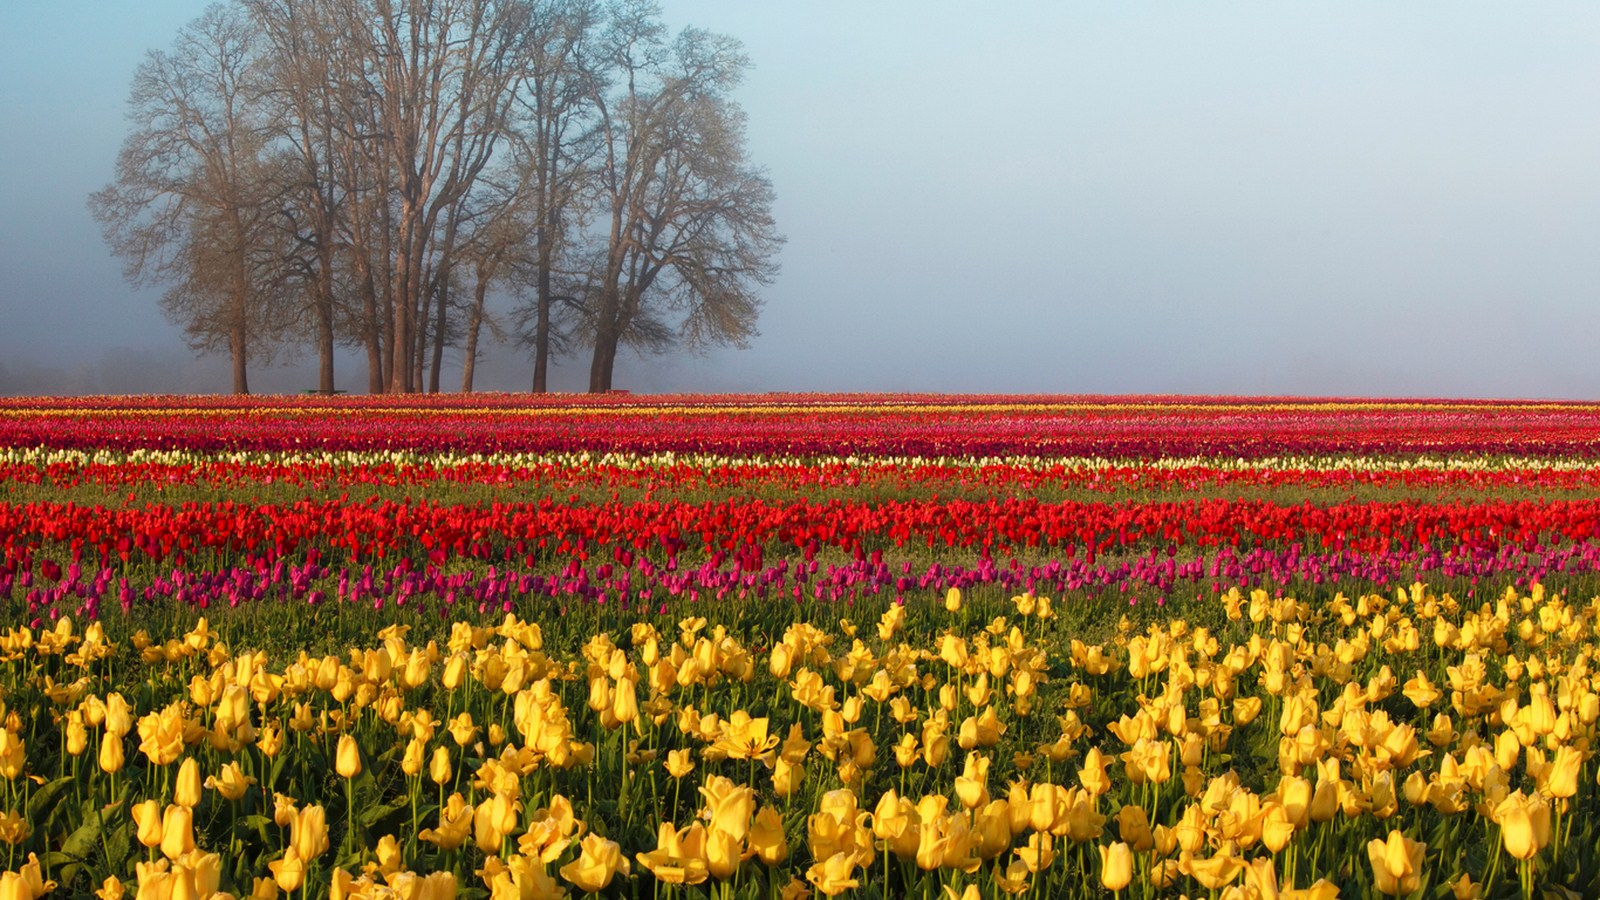 Field of tulips of different trees in the distance